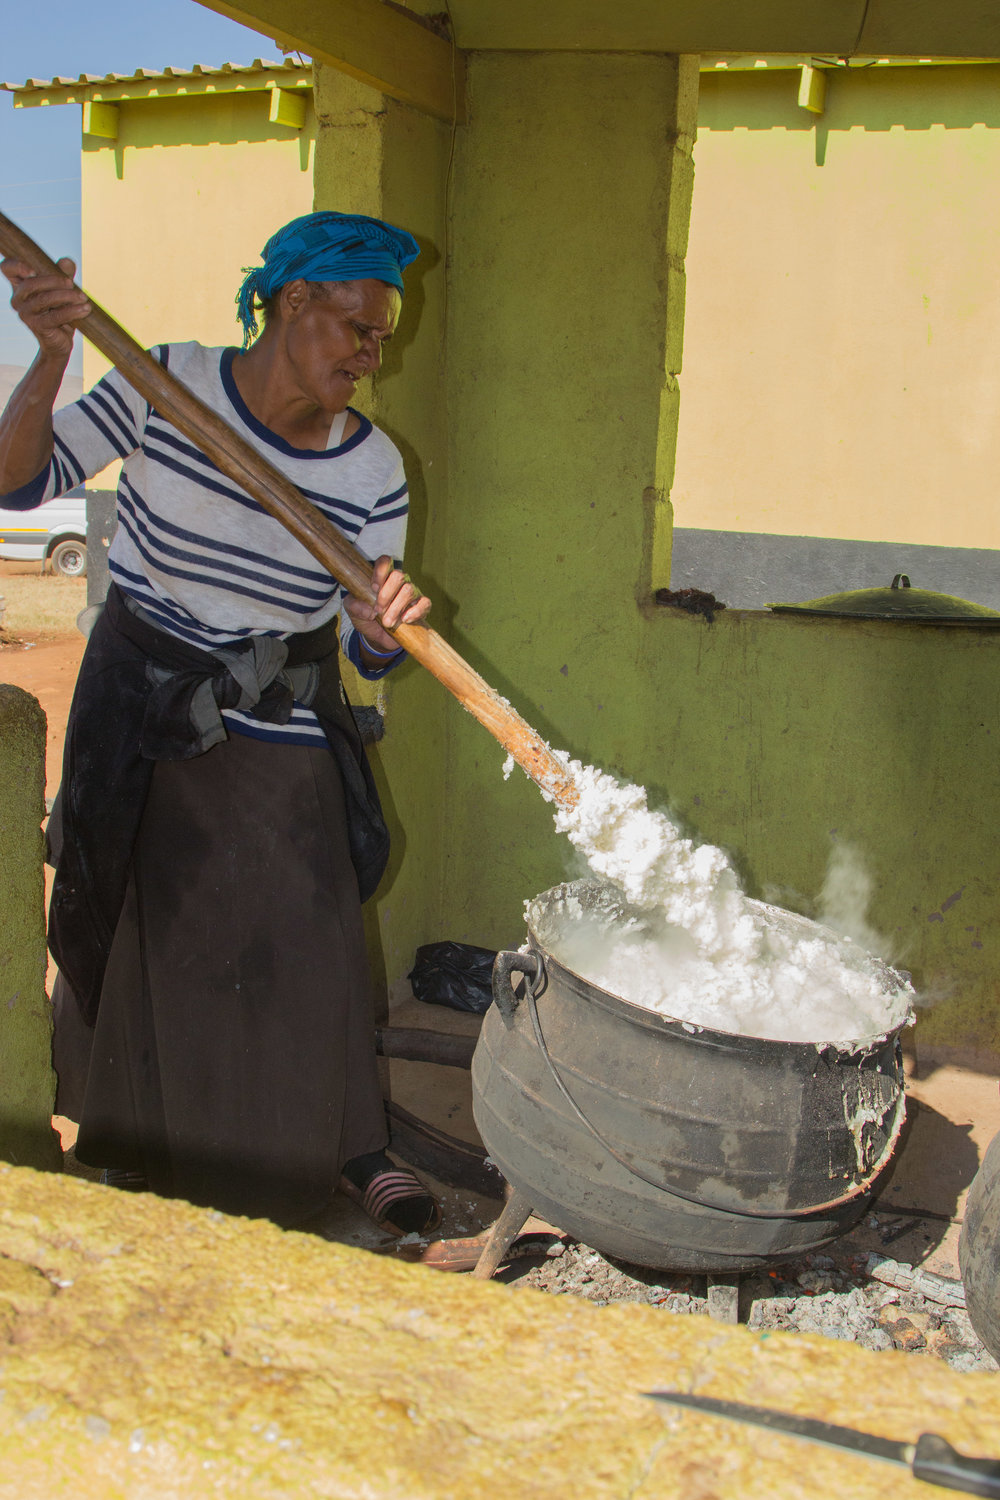 In the Gege CarePoint kitchen, Gogo (Grandmother) Norah stirs maize meal. It takes a lot of strength to stir (Anna can testify to this--she tried and failed).